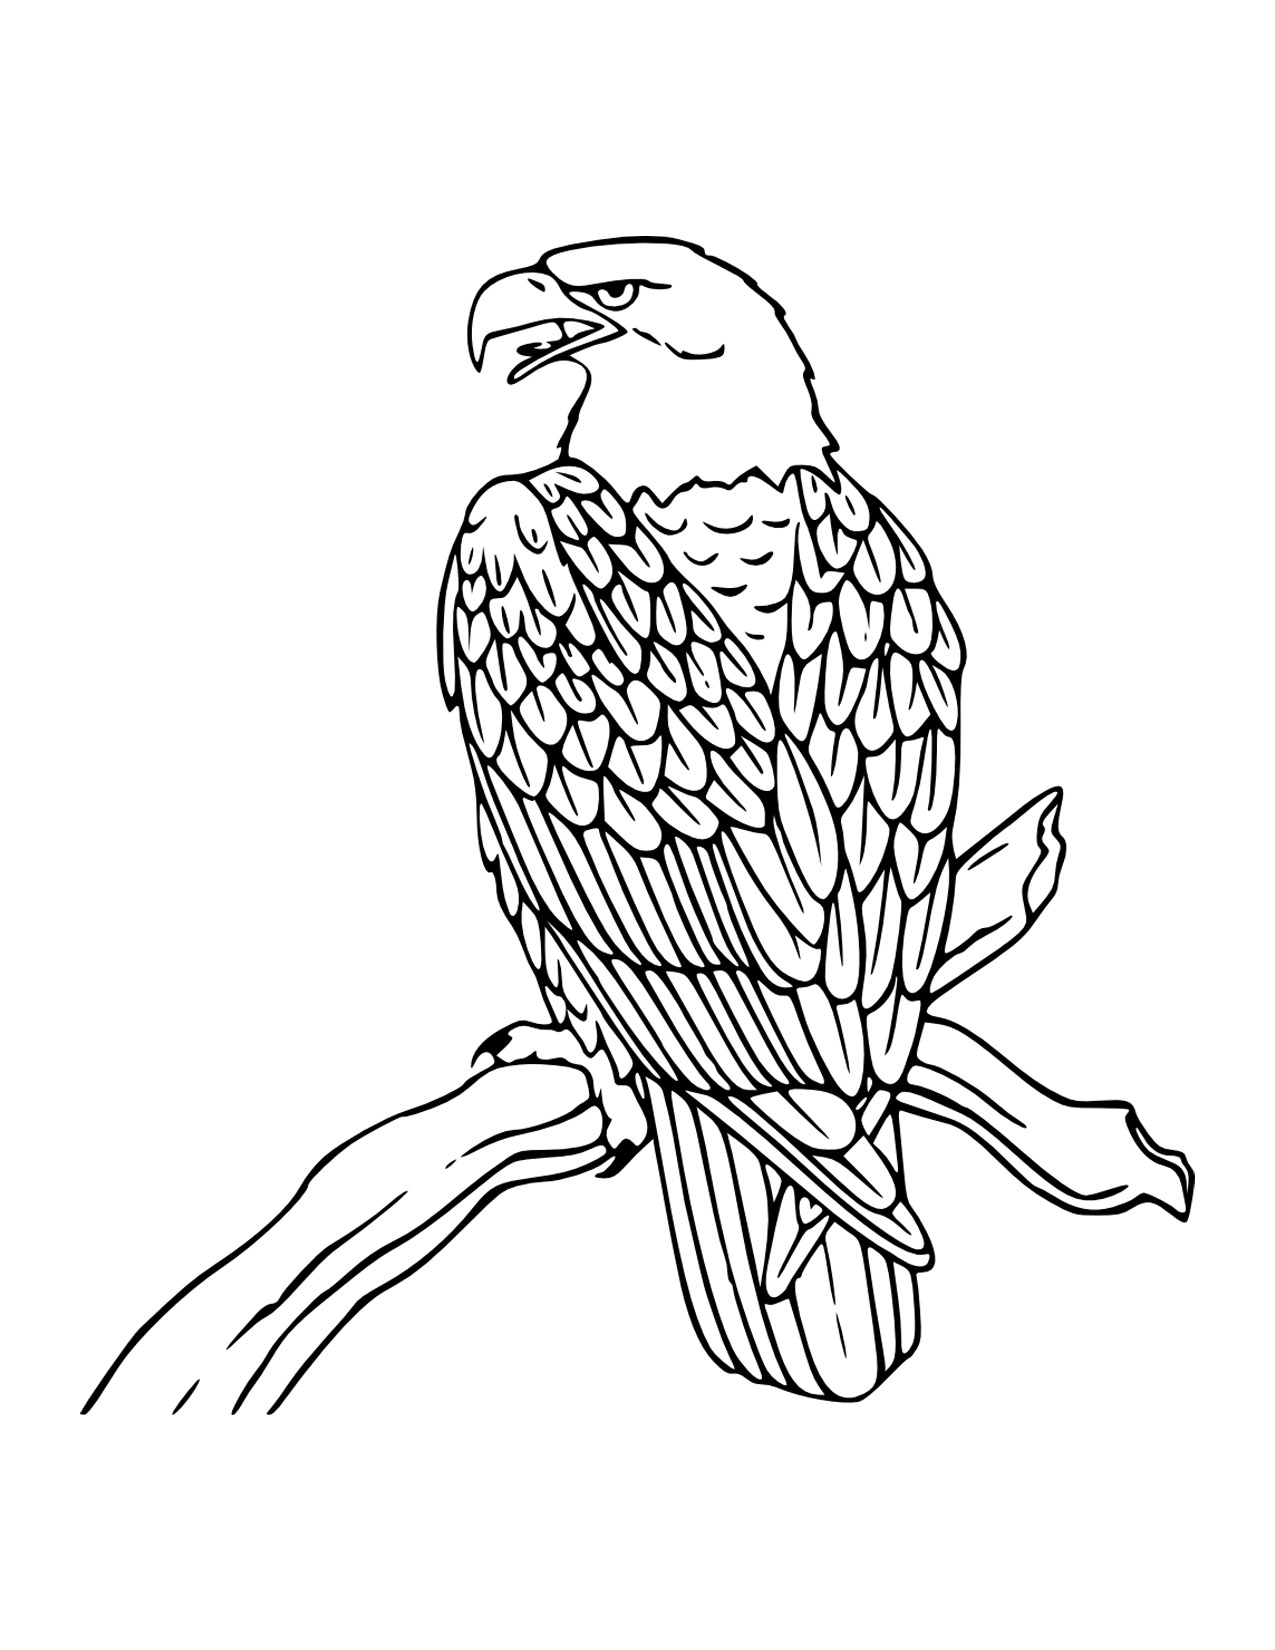 1275x1650 Free Eagle Coloring Pages With Printable Bald Eagle Coloring Pages